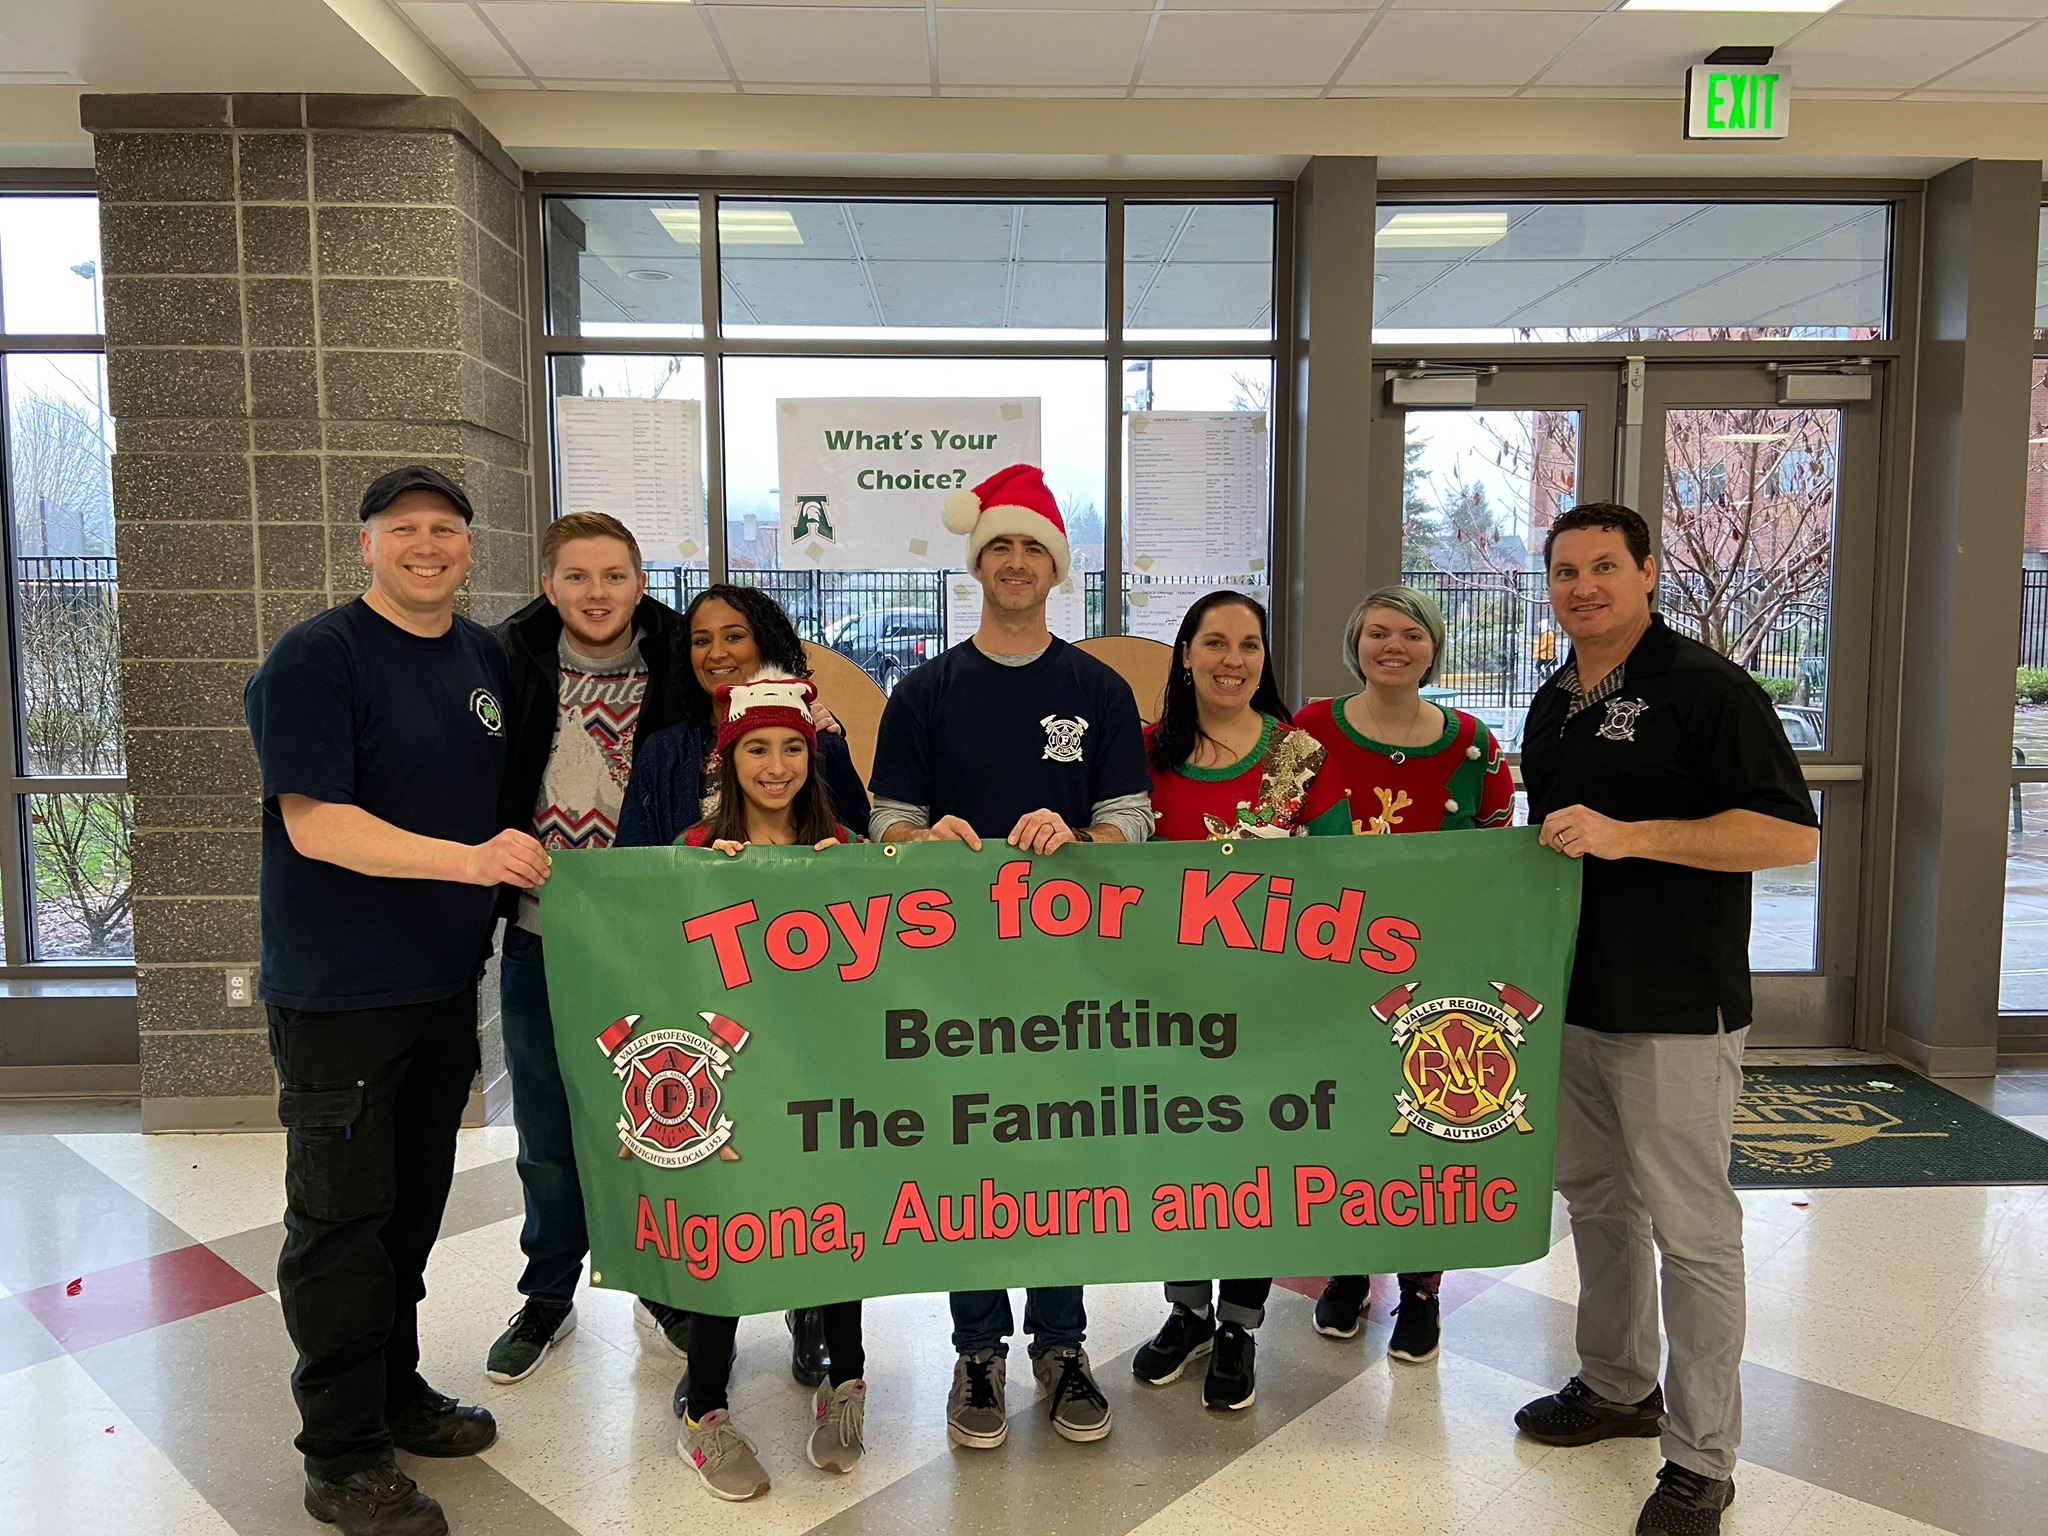 auburn wa, city of auburn, onw firefighters, valley professional fire fighters, valley professional firefighters, vrfa, valley regional fire authority, local iaff 1352, toys for kids, holiday toy drive